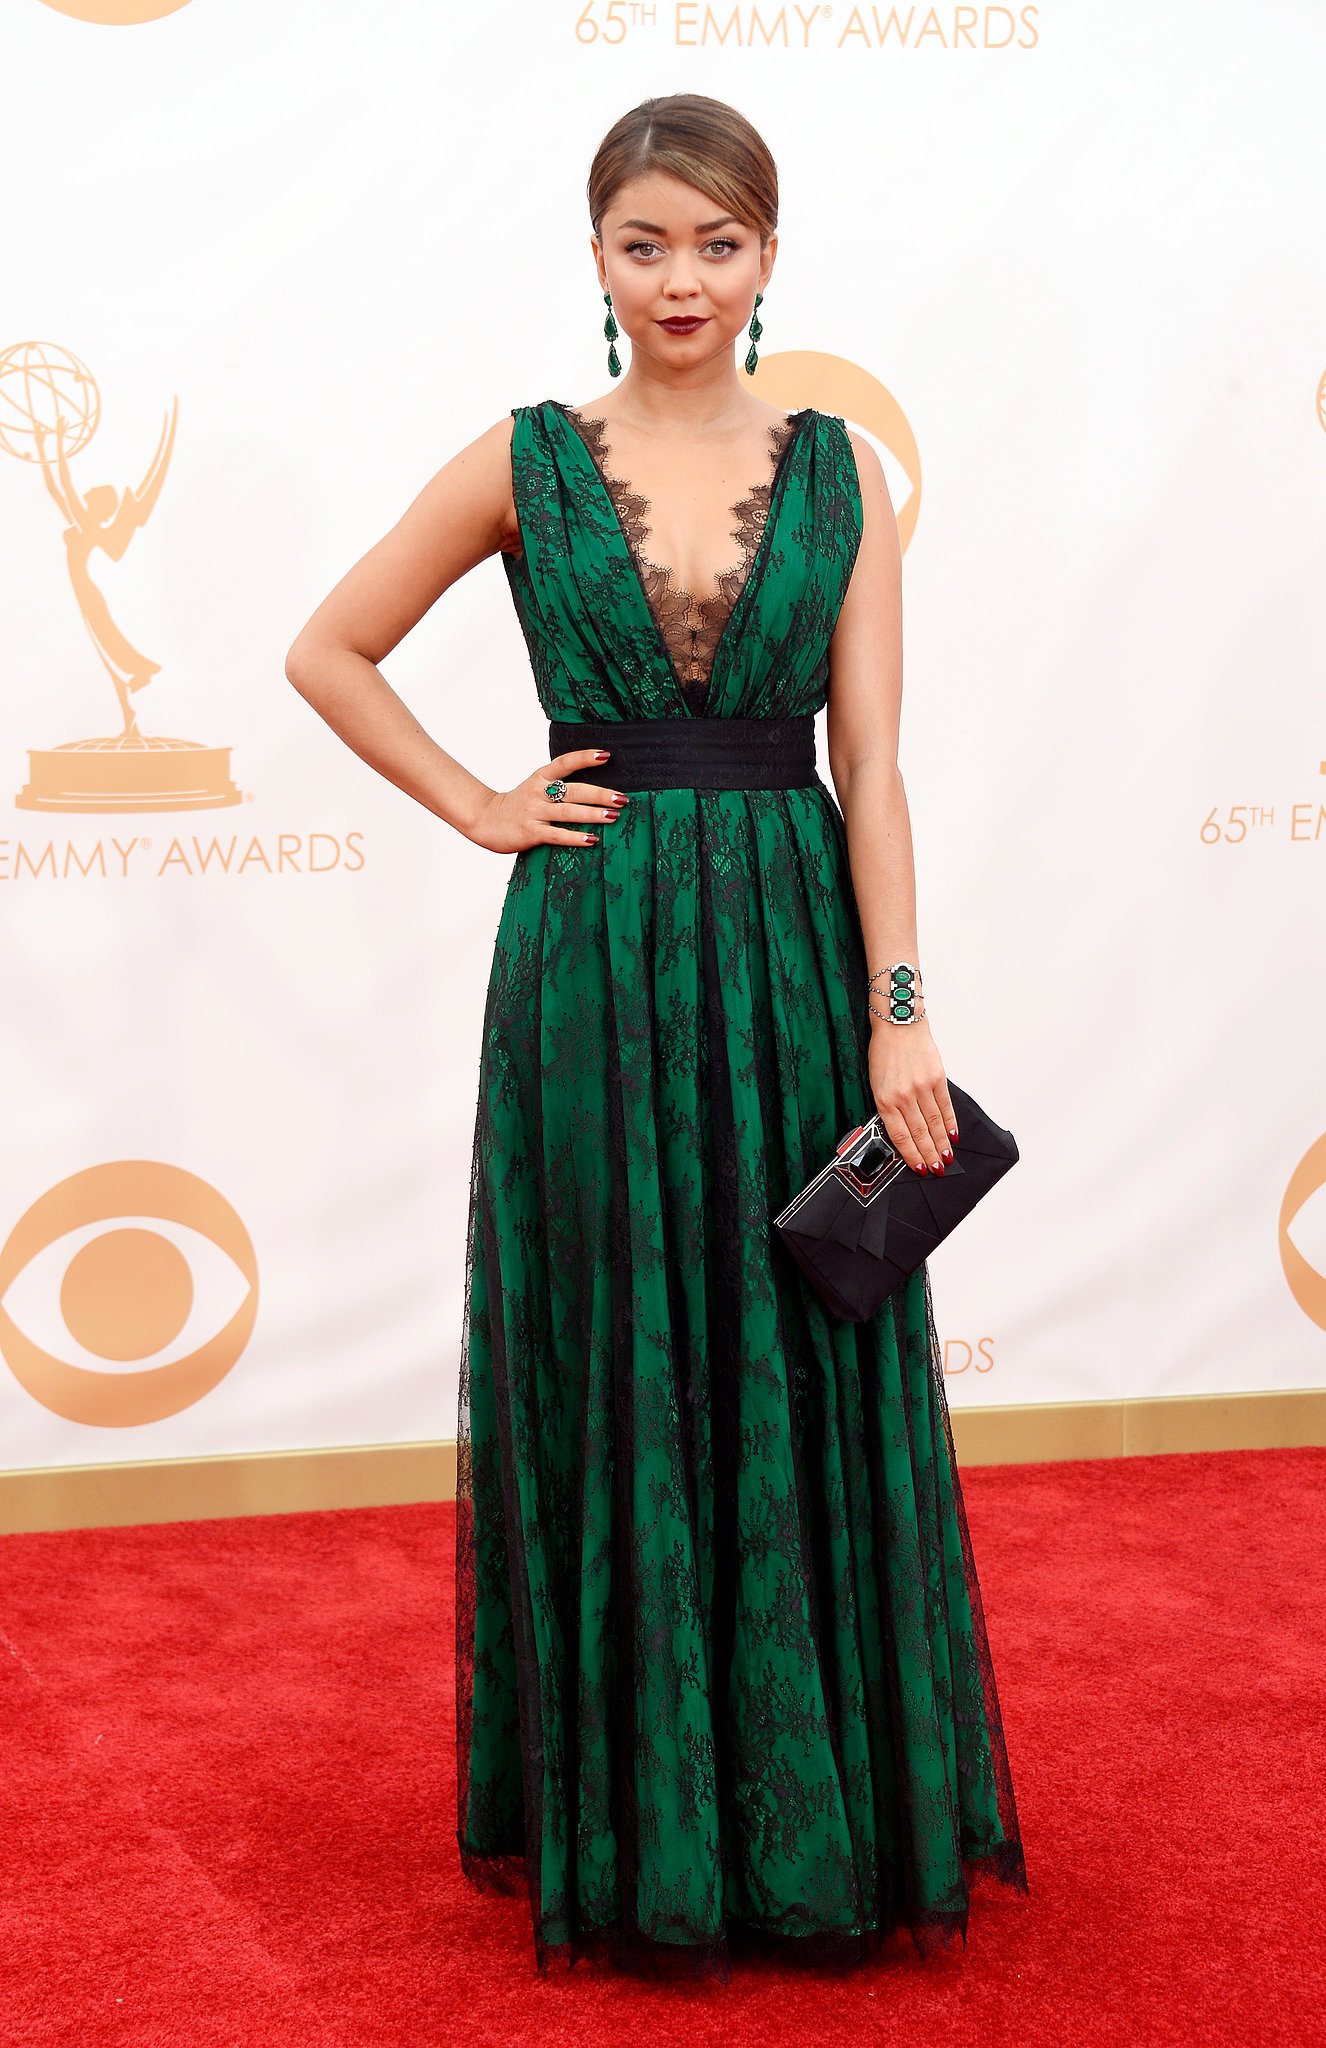 Modern Family's Sarah Hyland donned a green gown for the Emmys.